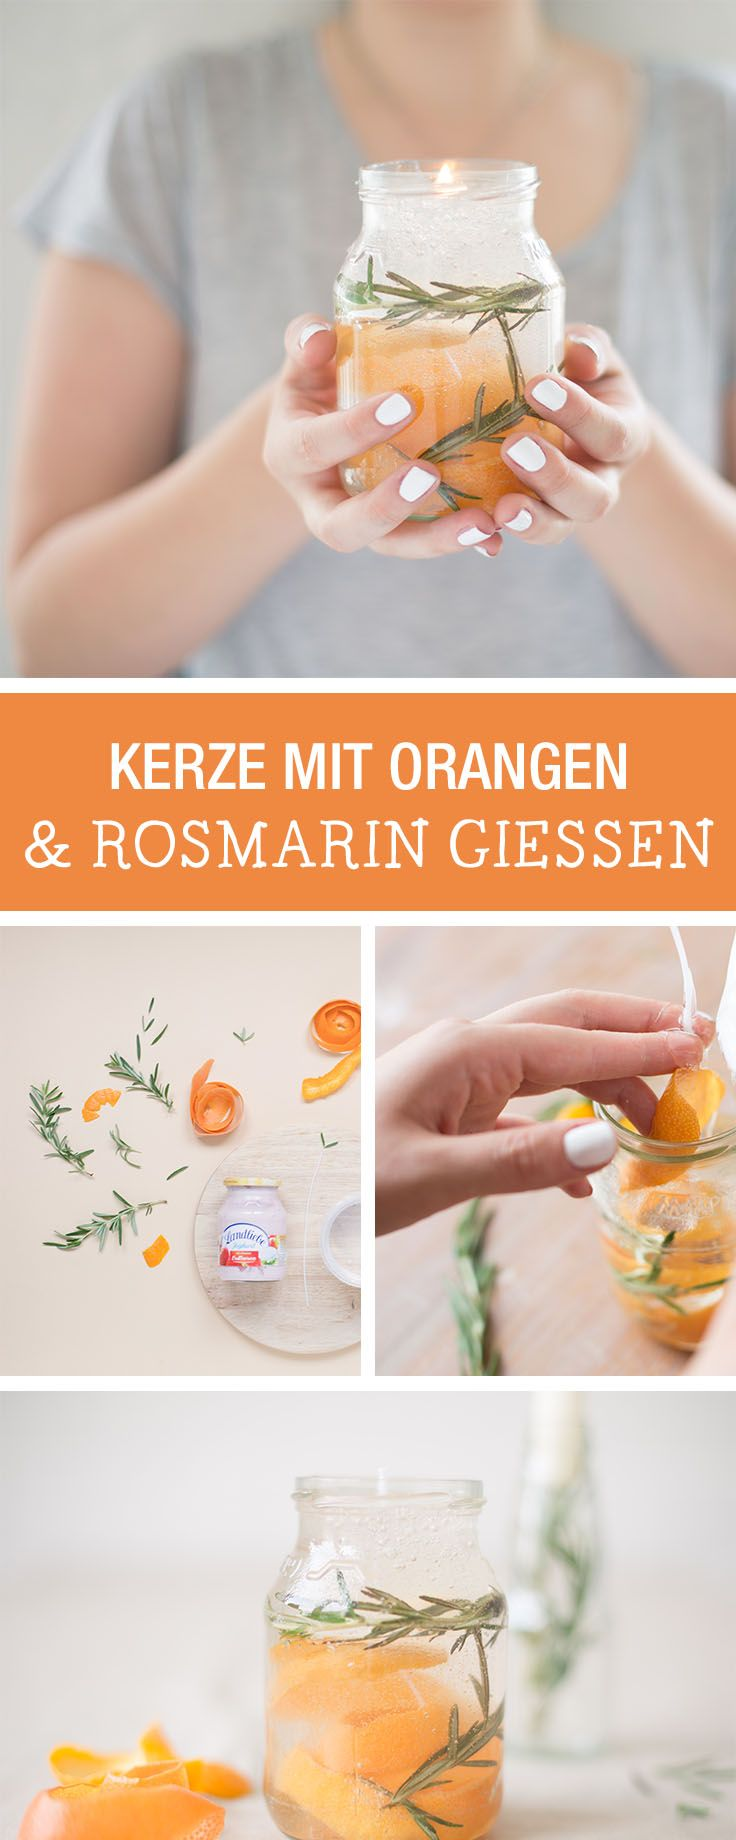 diy idee f r zuhause kerze mit orange und rosmarin gie en easy diy inspiration candle made. Black Bedroom Furniture Sets. Home Design Ideas